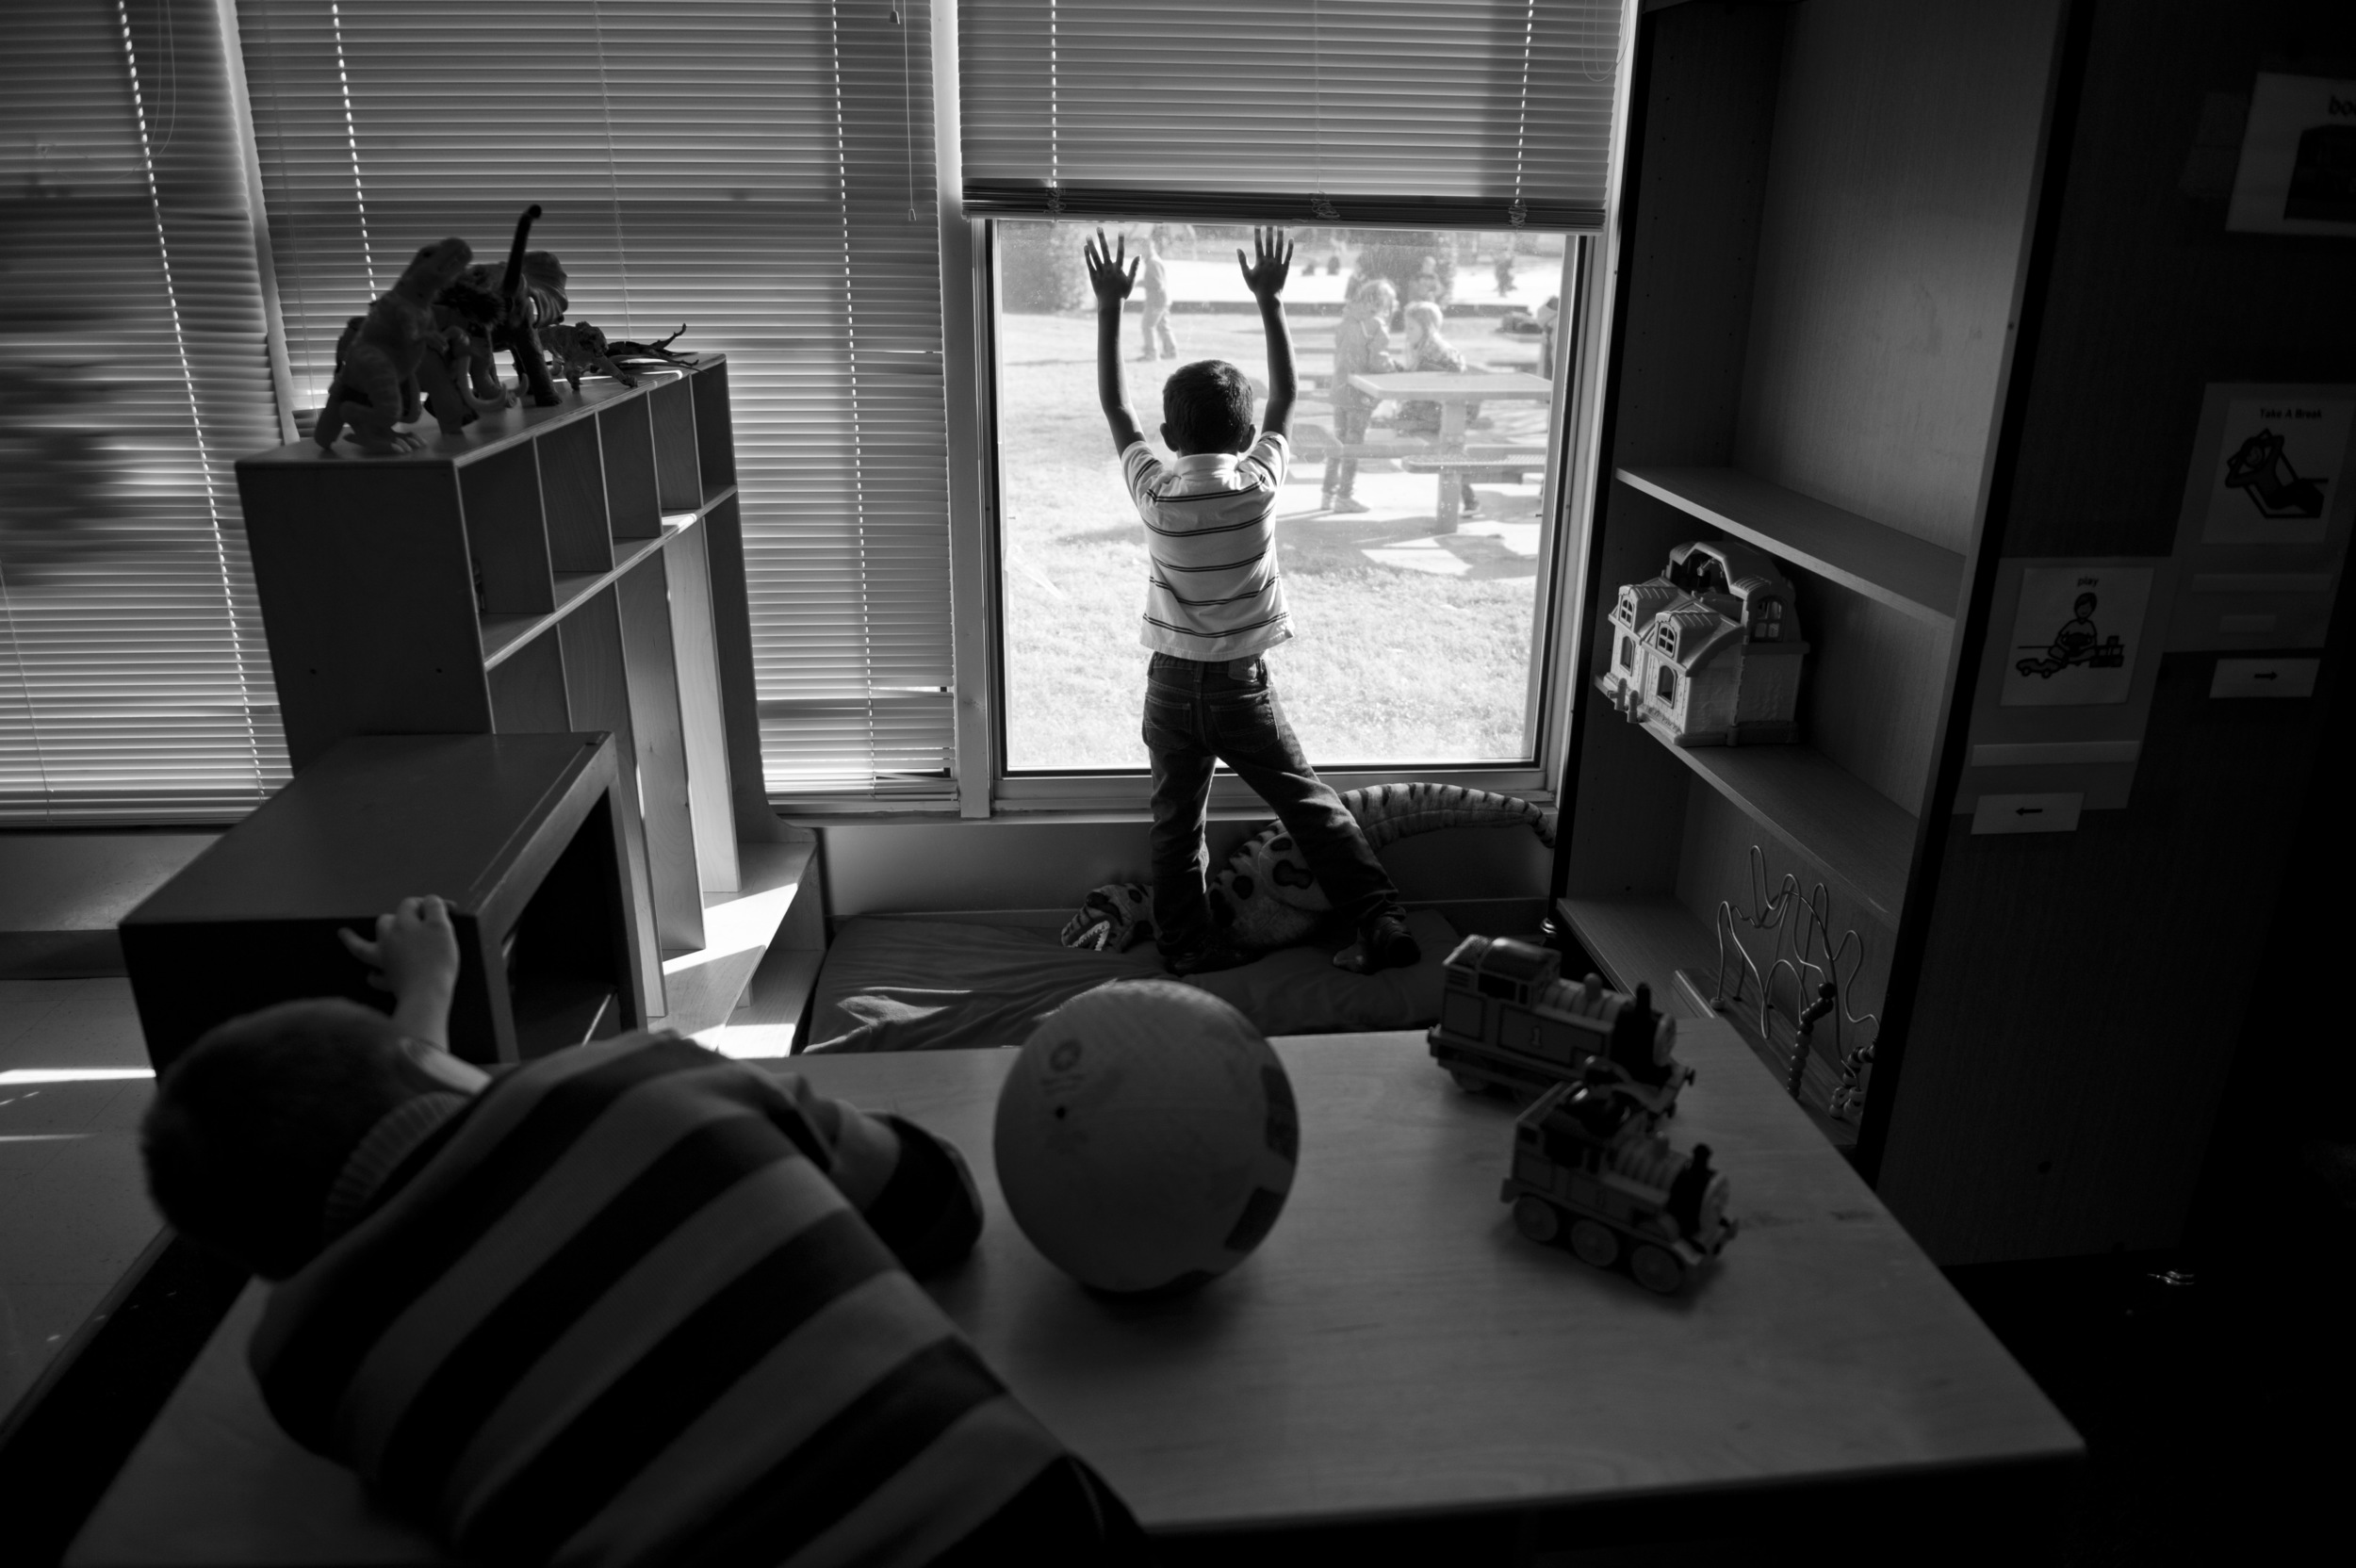 Marcus and a classmate in his autism-specific classroom long to be outside playing with the others.